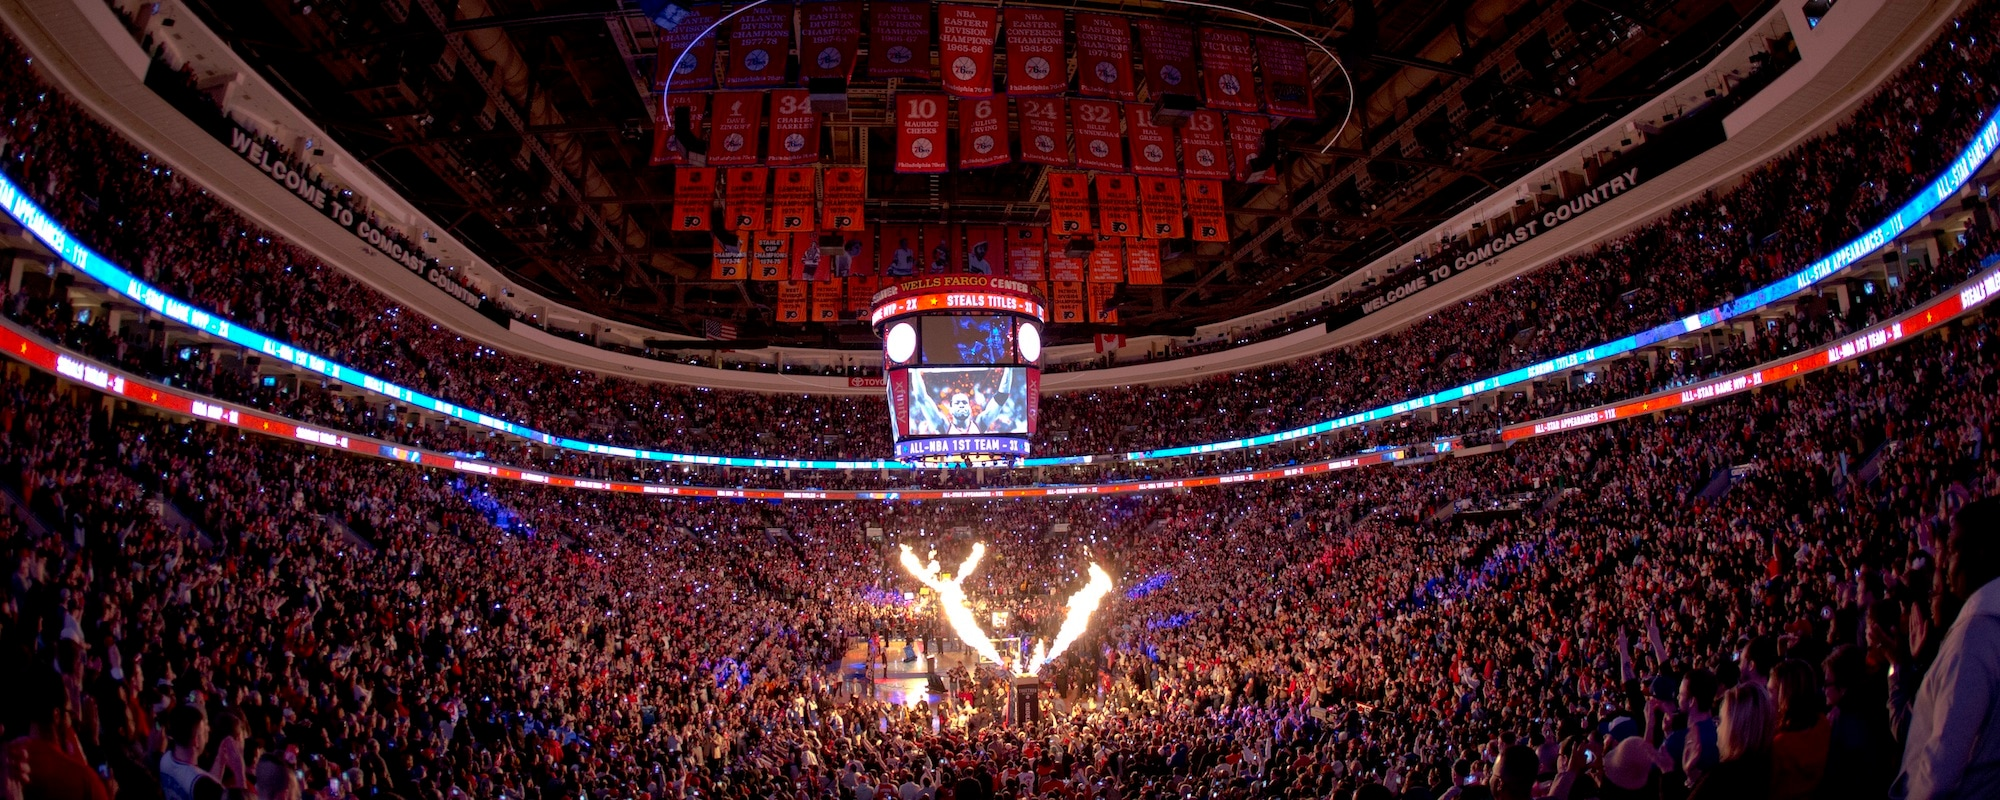 philadelphia 76ers announce details for opening night on saturday  november 1  presented by